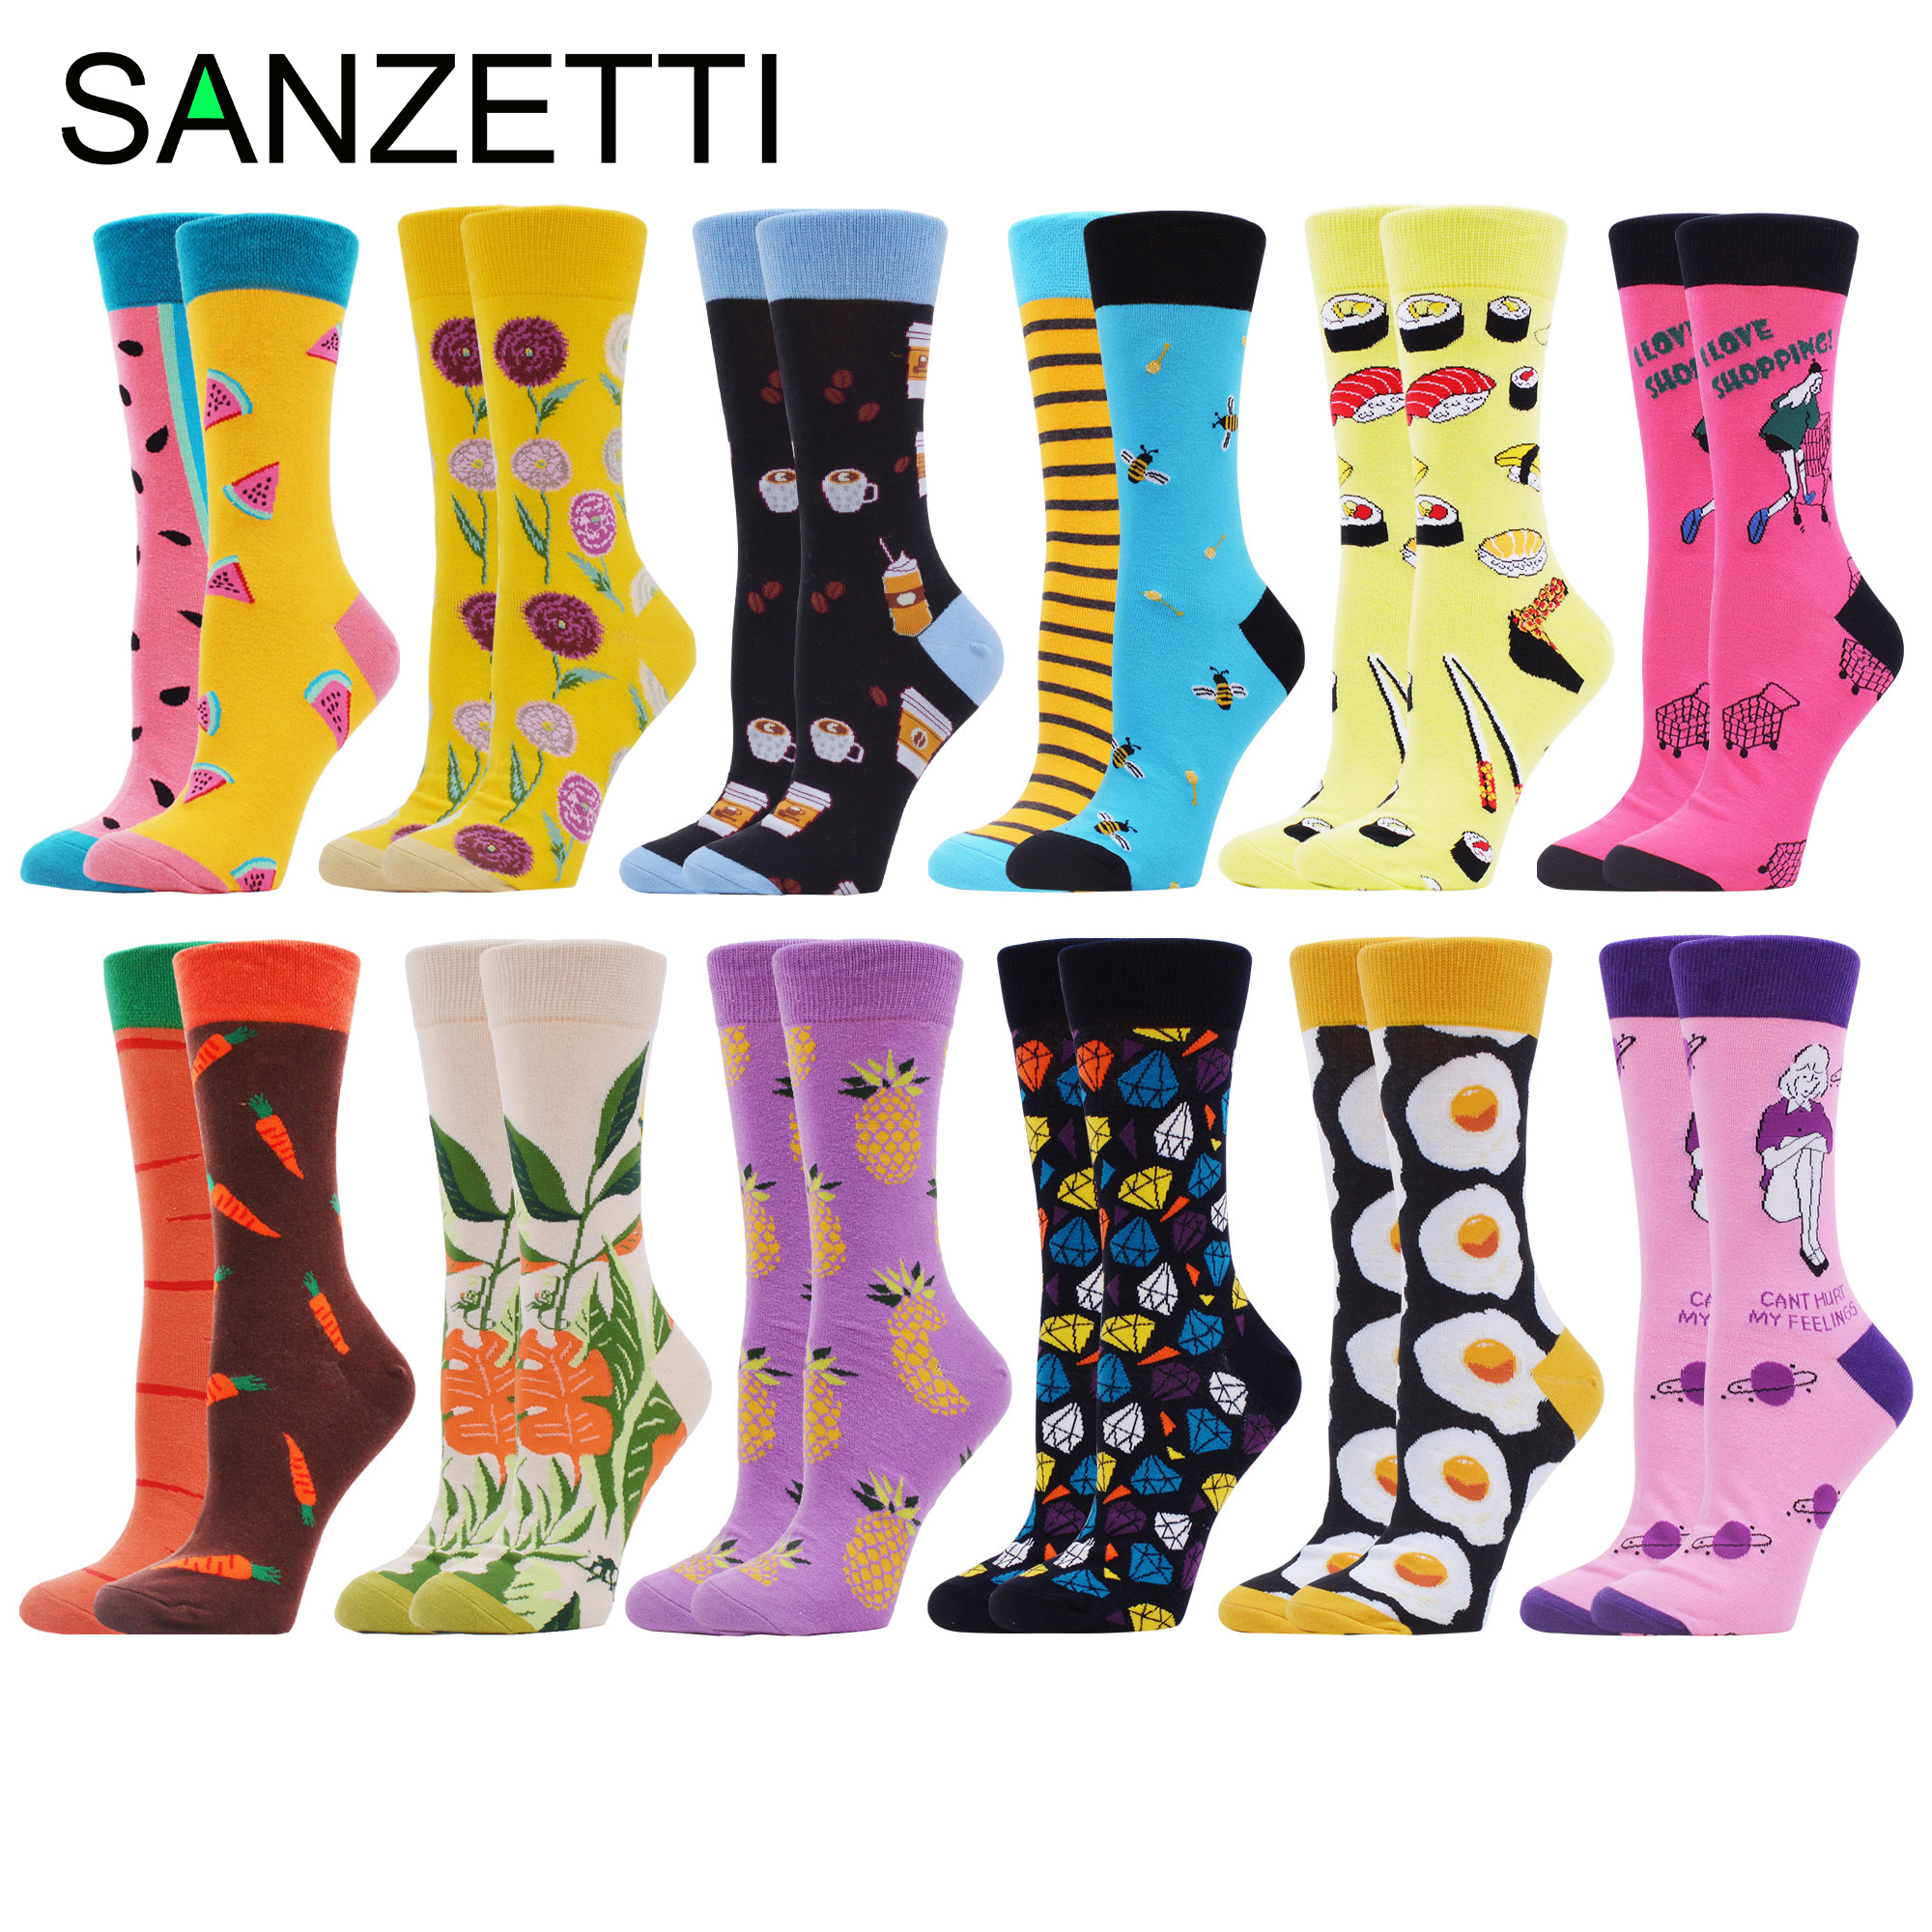 SANZETTI 12 Pairs Women Combed Cotton Socks Multi Colorful Happy Lovely Food Novelty Wedding Bright Gifts Dress Popular Socks